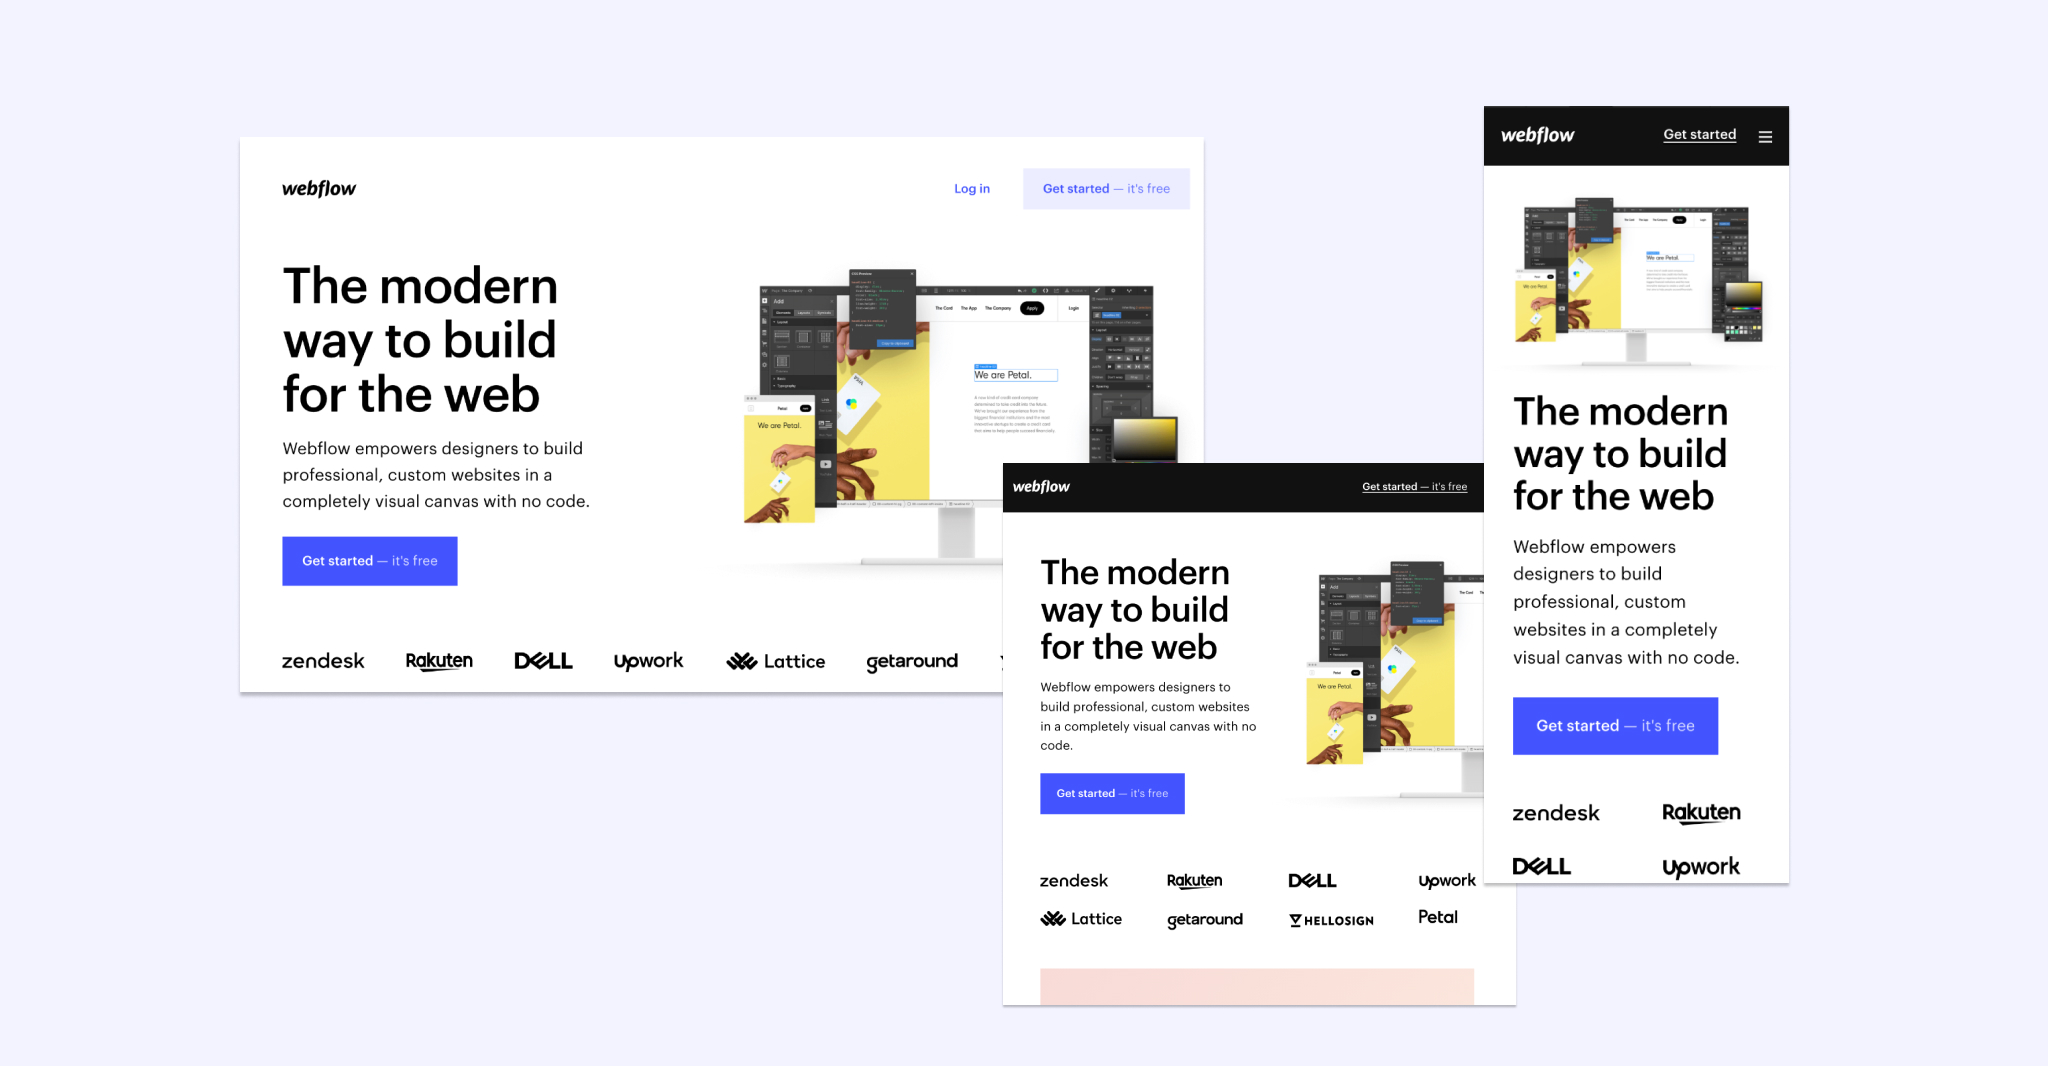 An image of different views of Webflow's website: desktop, tablet, and mobile.